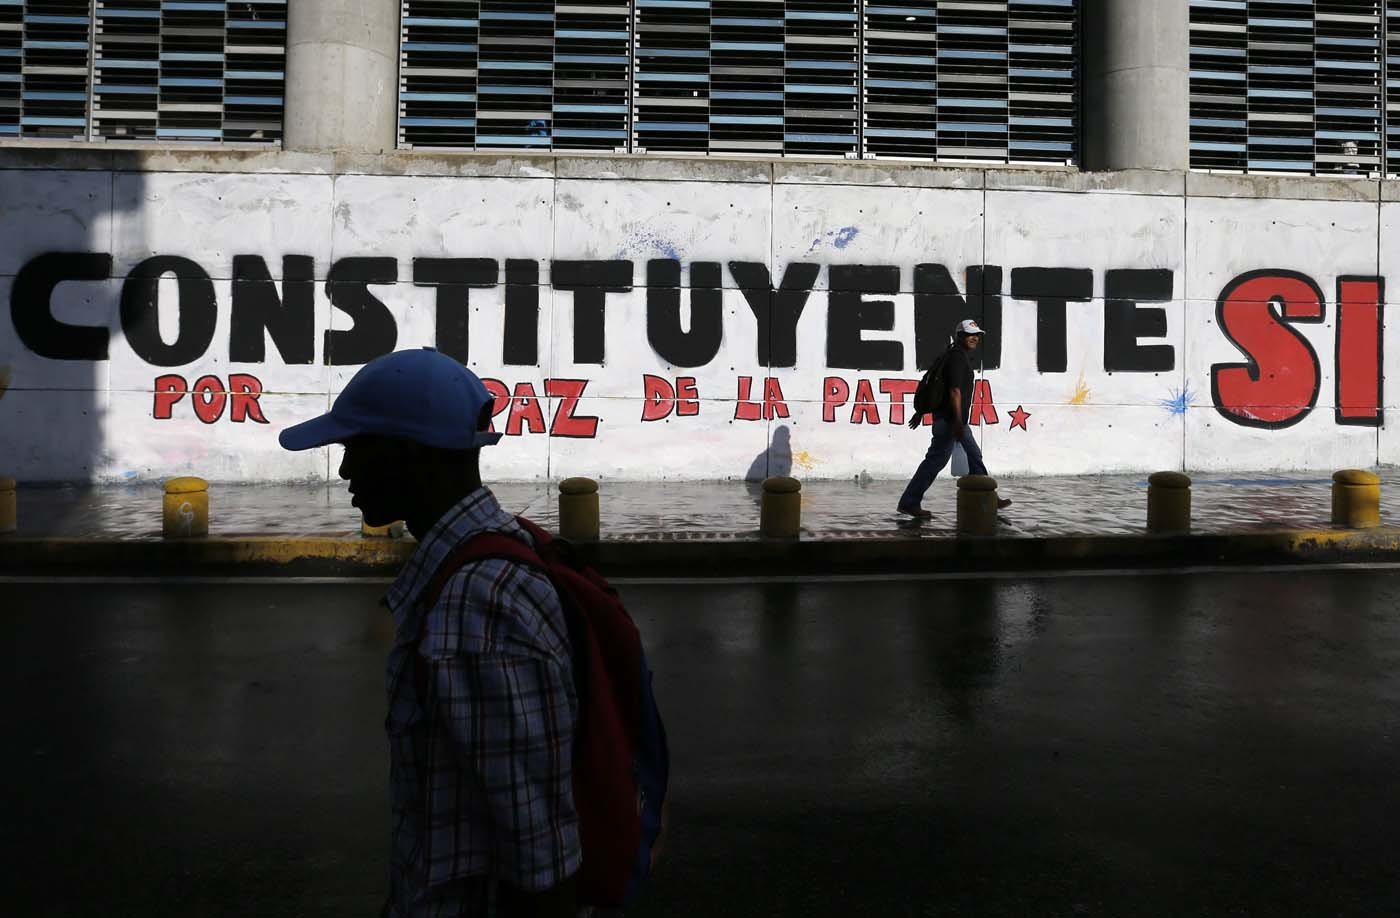 People walk by a mural promoting the election during the Constituent Assembly election in Caracas, Venezuela, July 30, 2017. REUTERS/Andres Martinez Casares